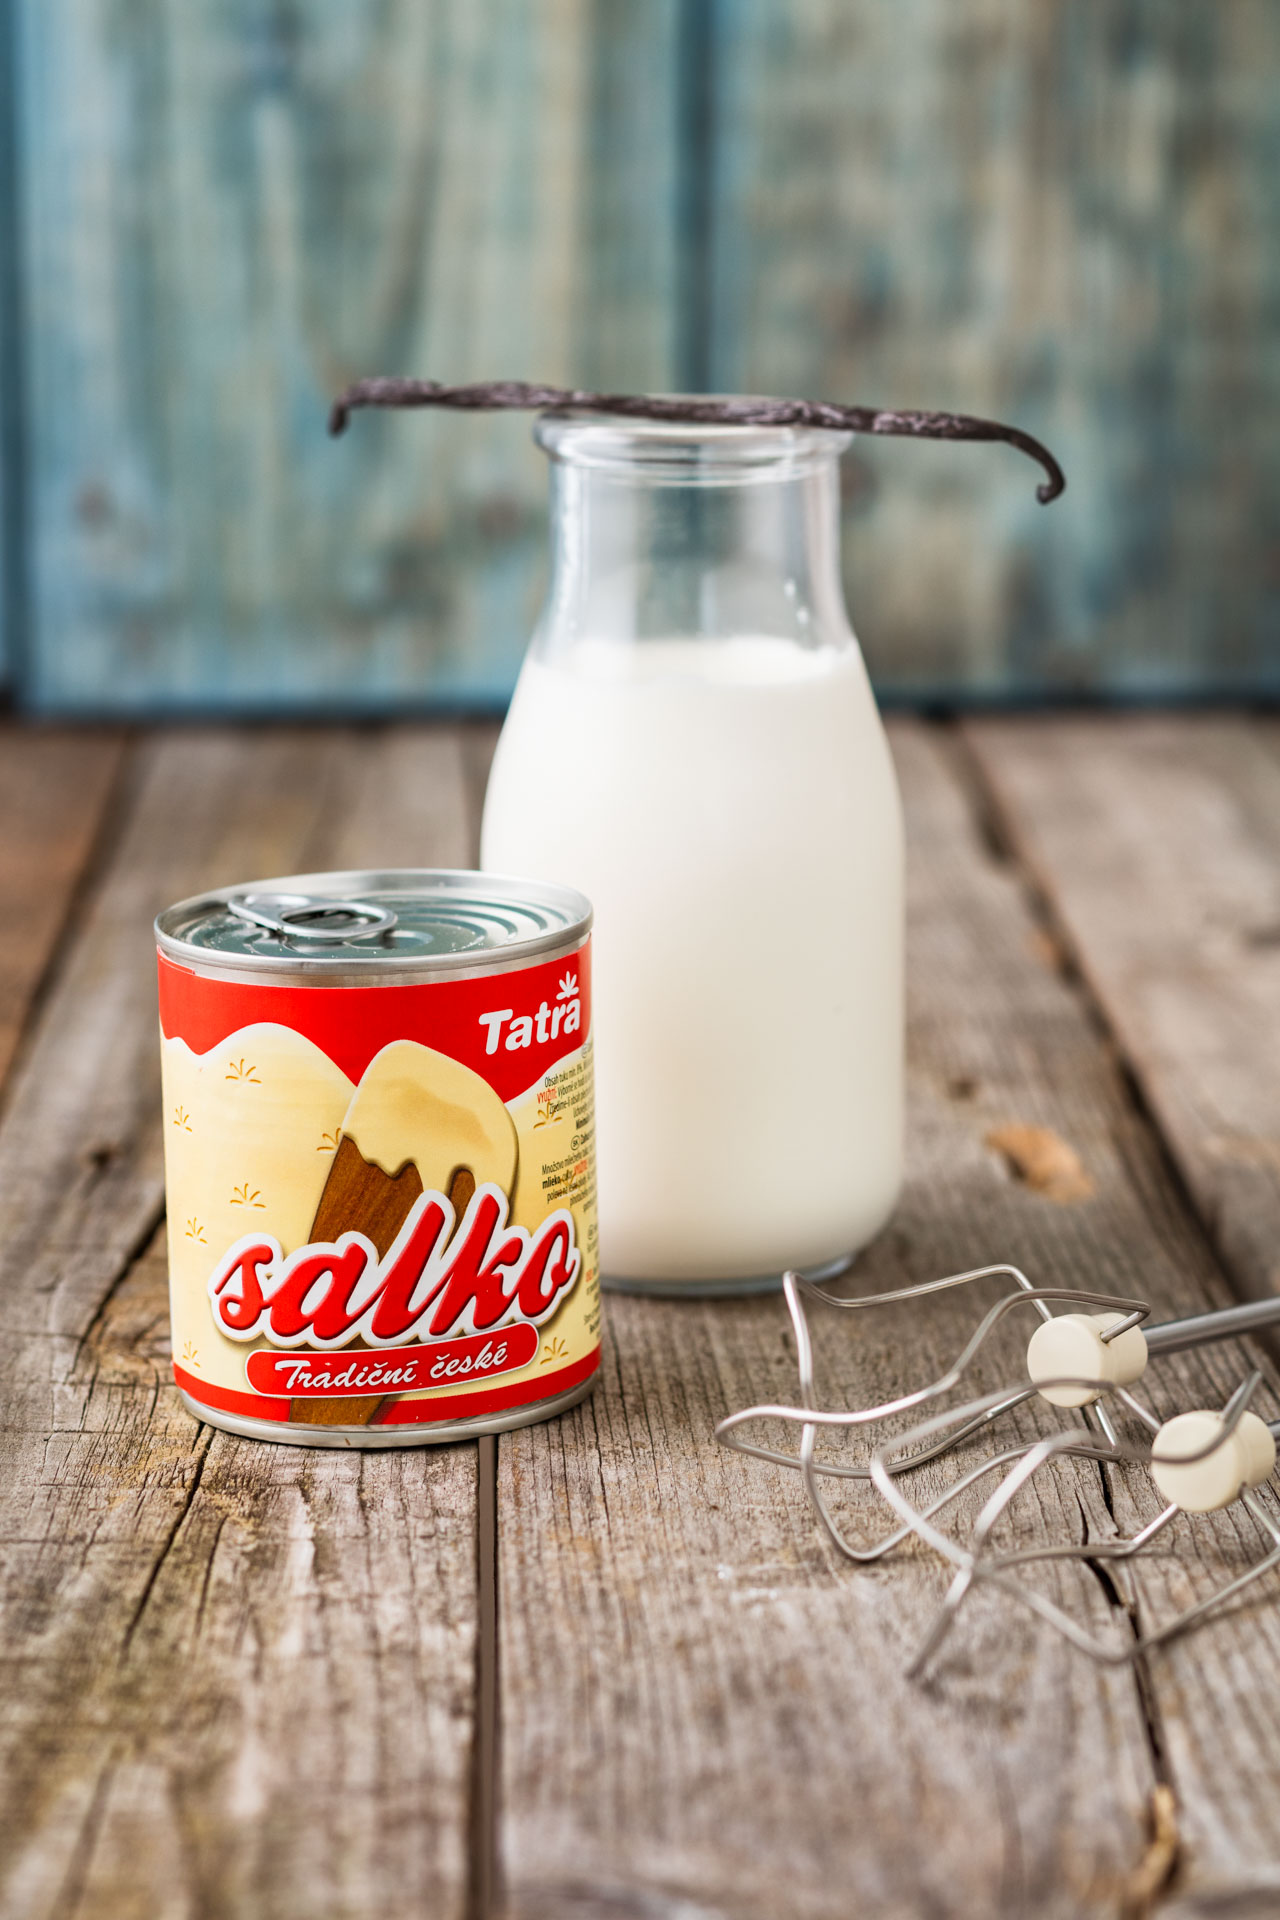 Ingredients for Vanilla ice recipe, tatra salko and cream